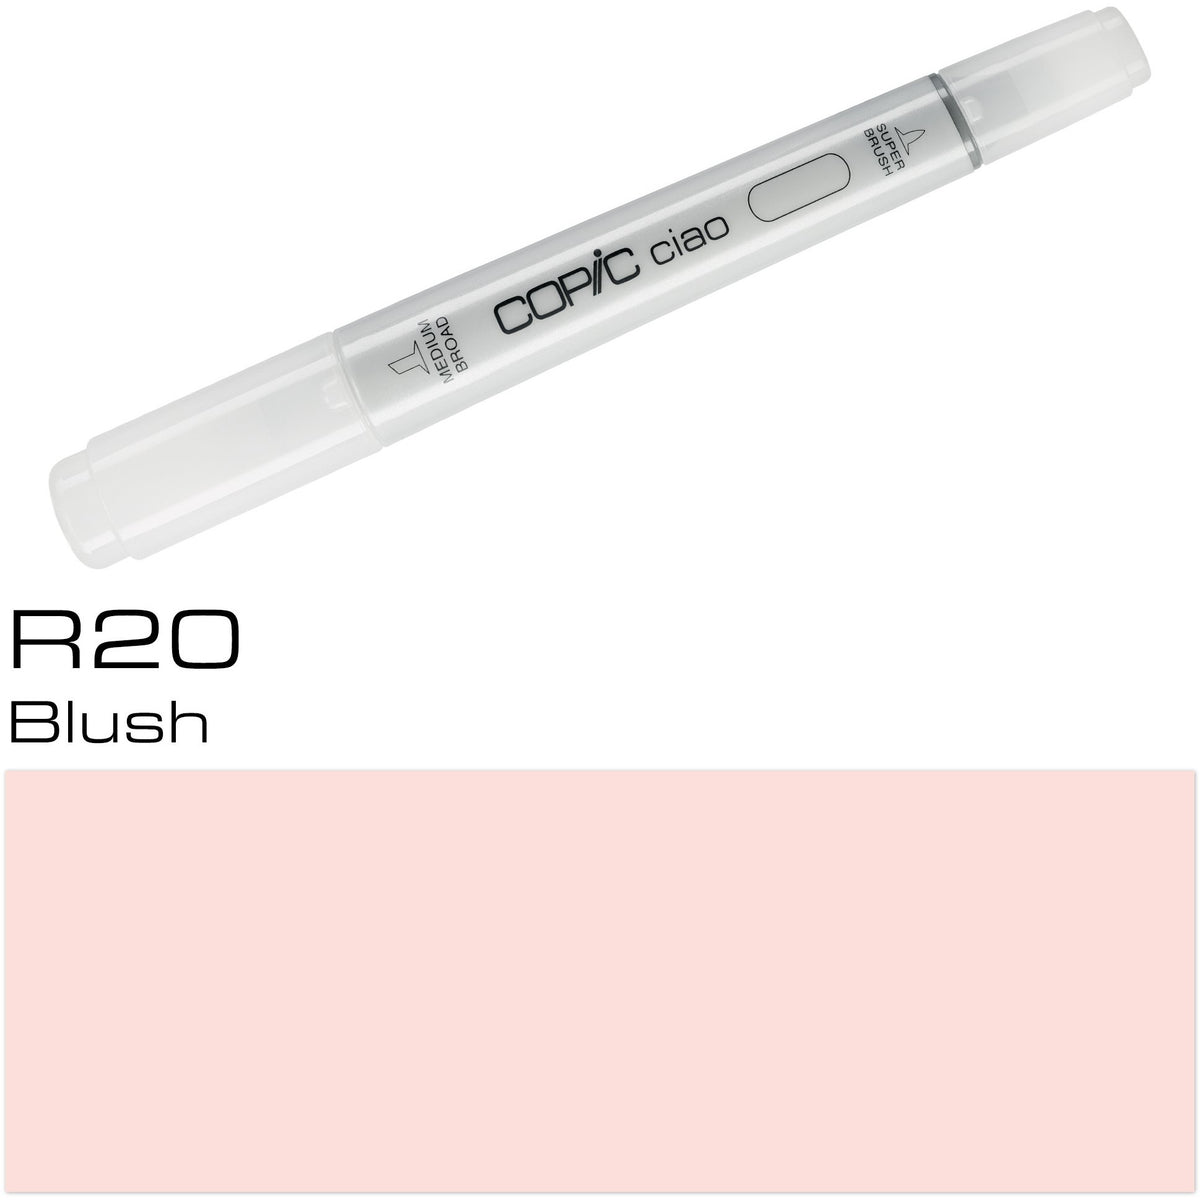 COPIC ciao Marker, R20